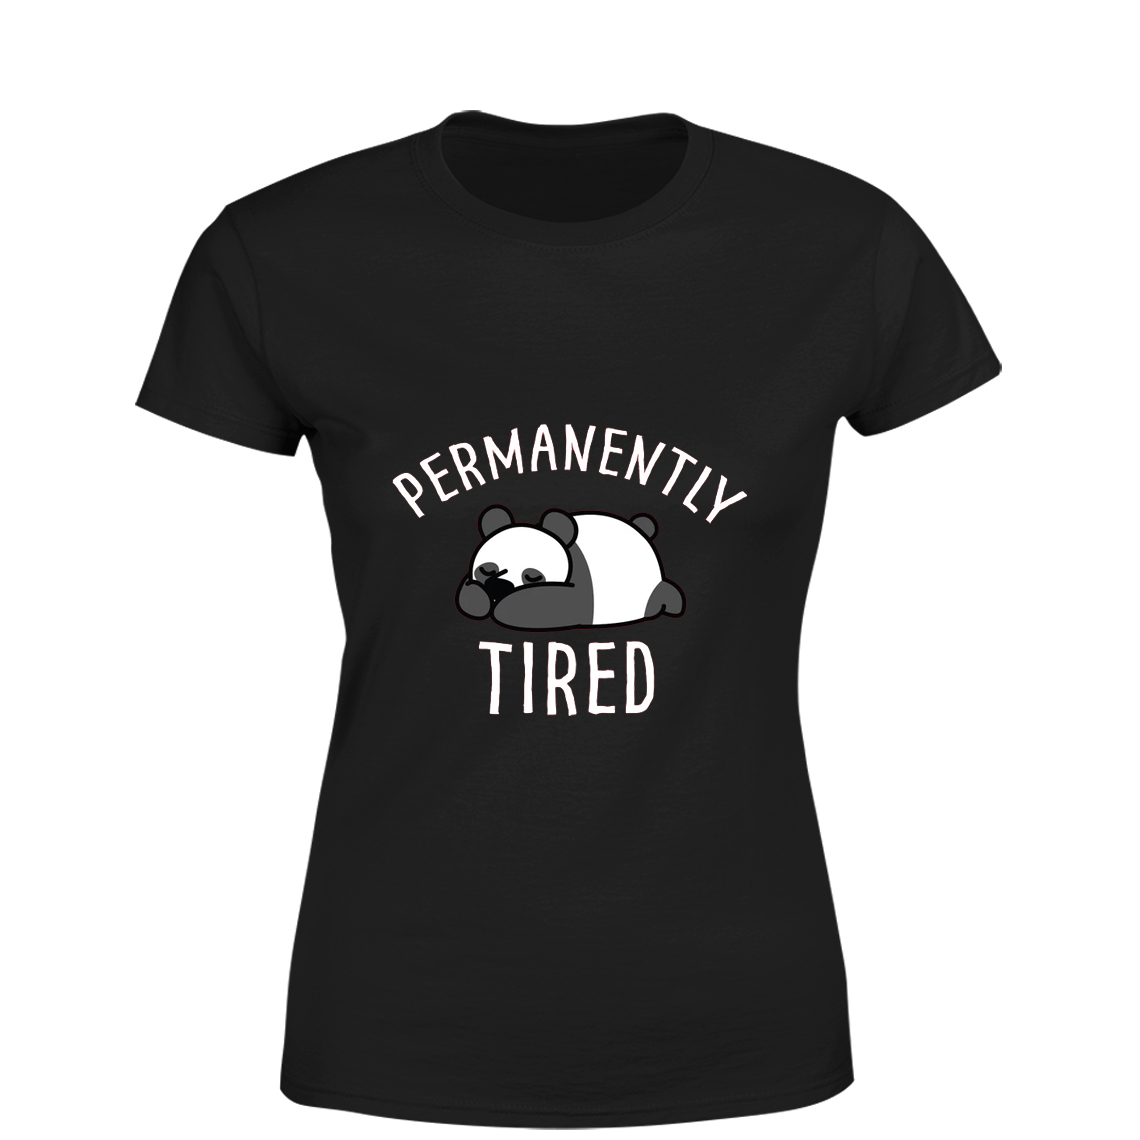 Permanently Tired Top